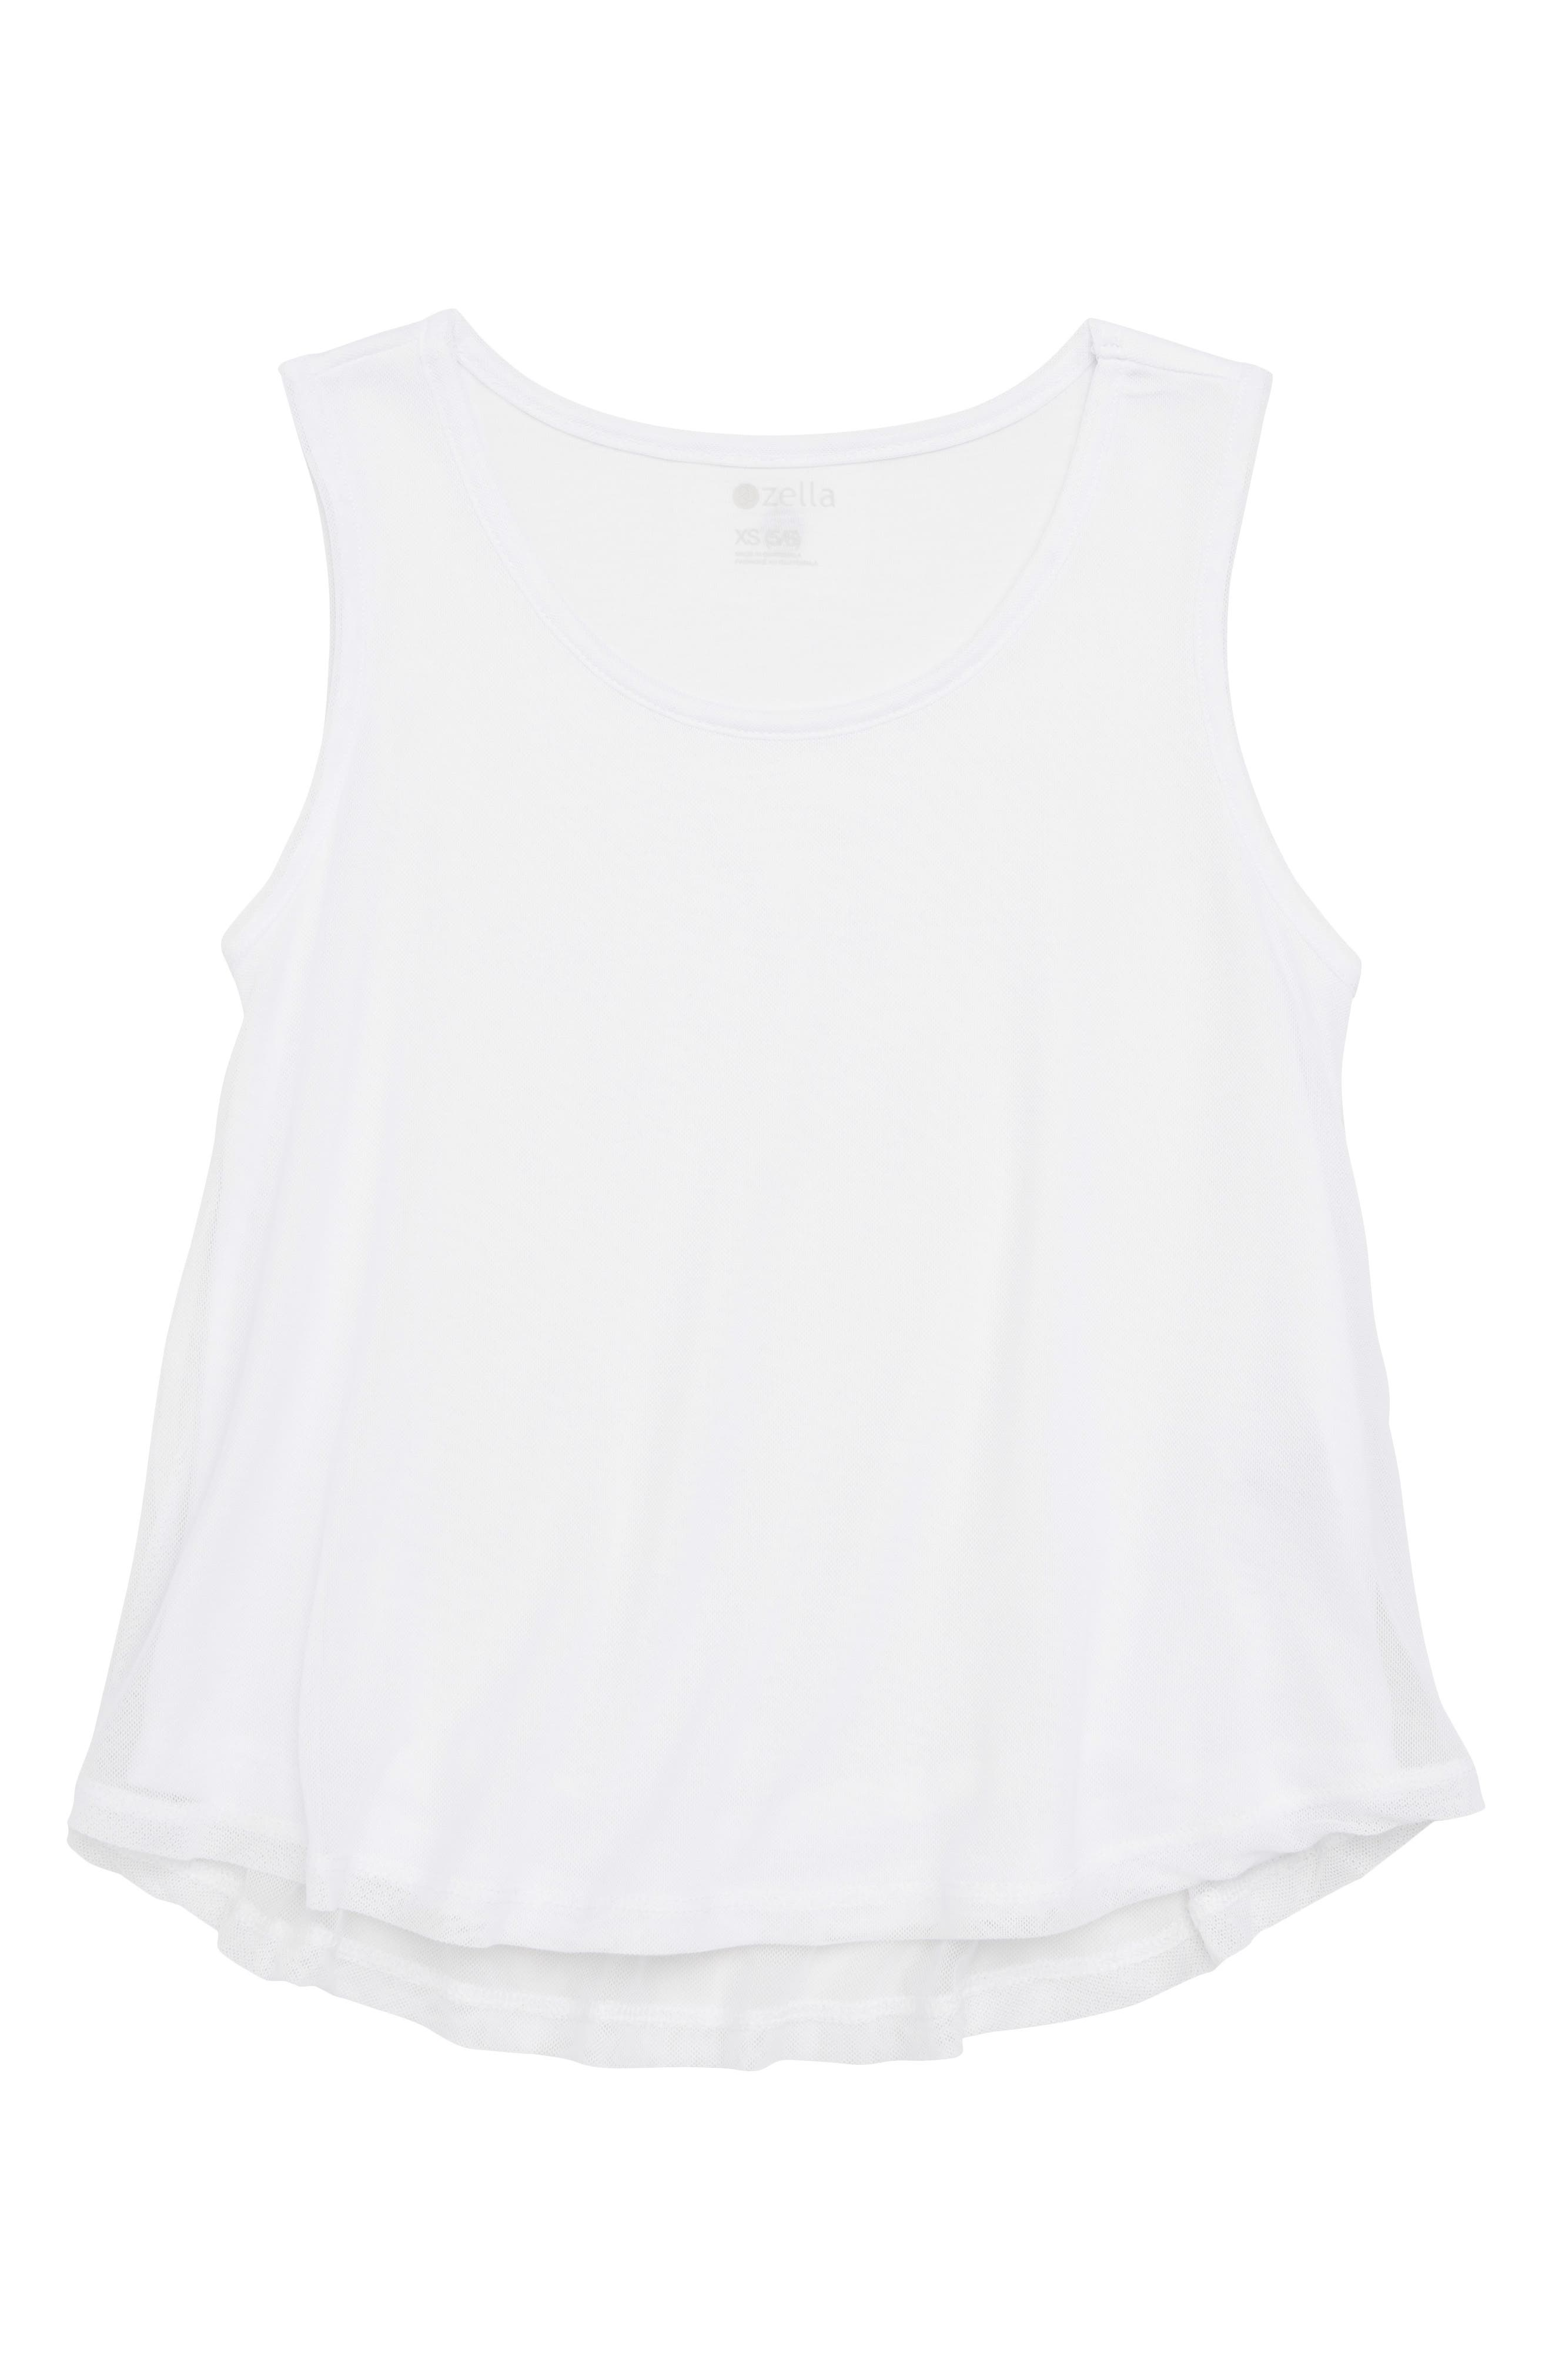 Sheer Form Tank,                         Main,                         color, White